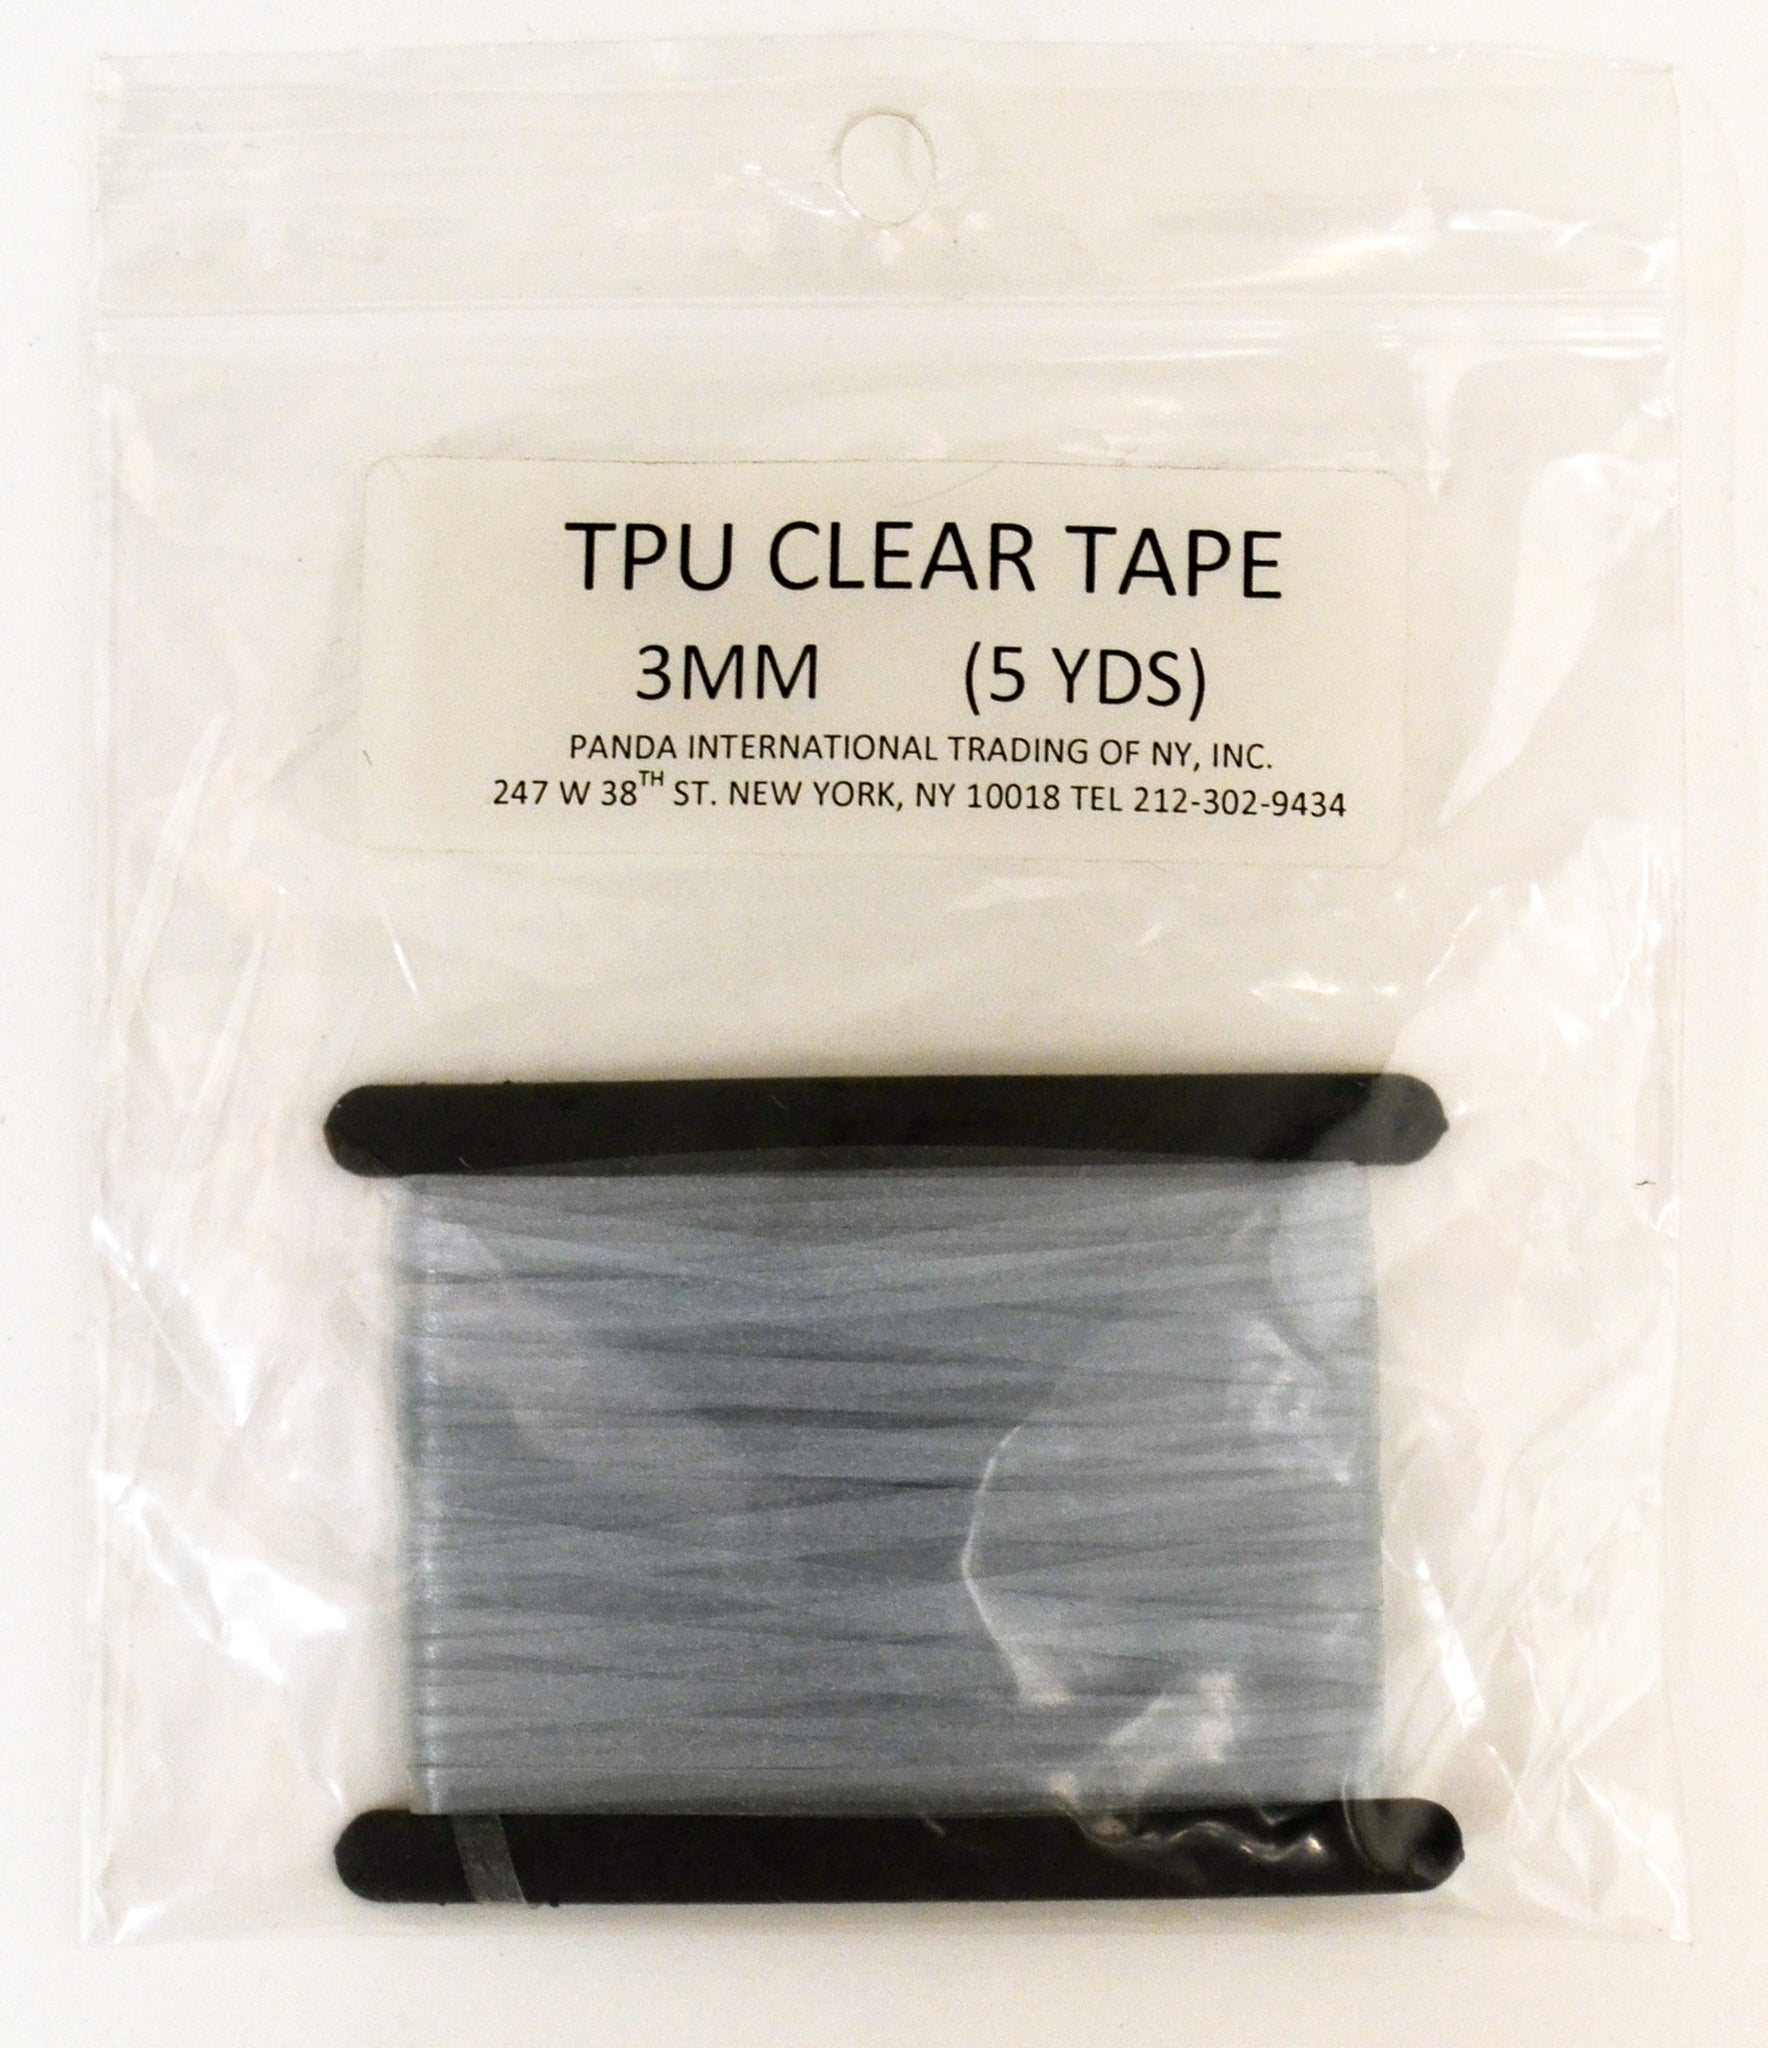 TPU Clear Tape - 5yds